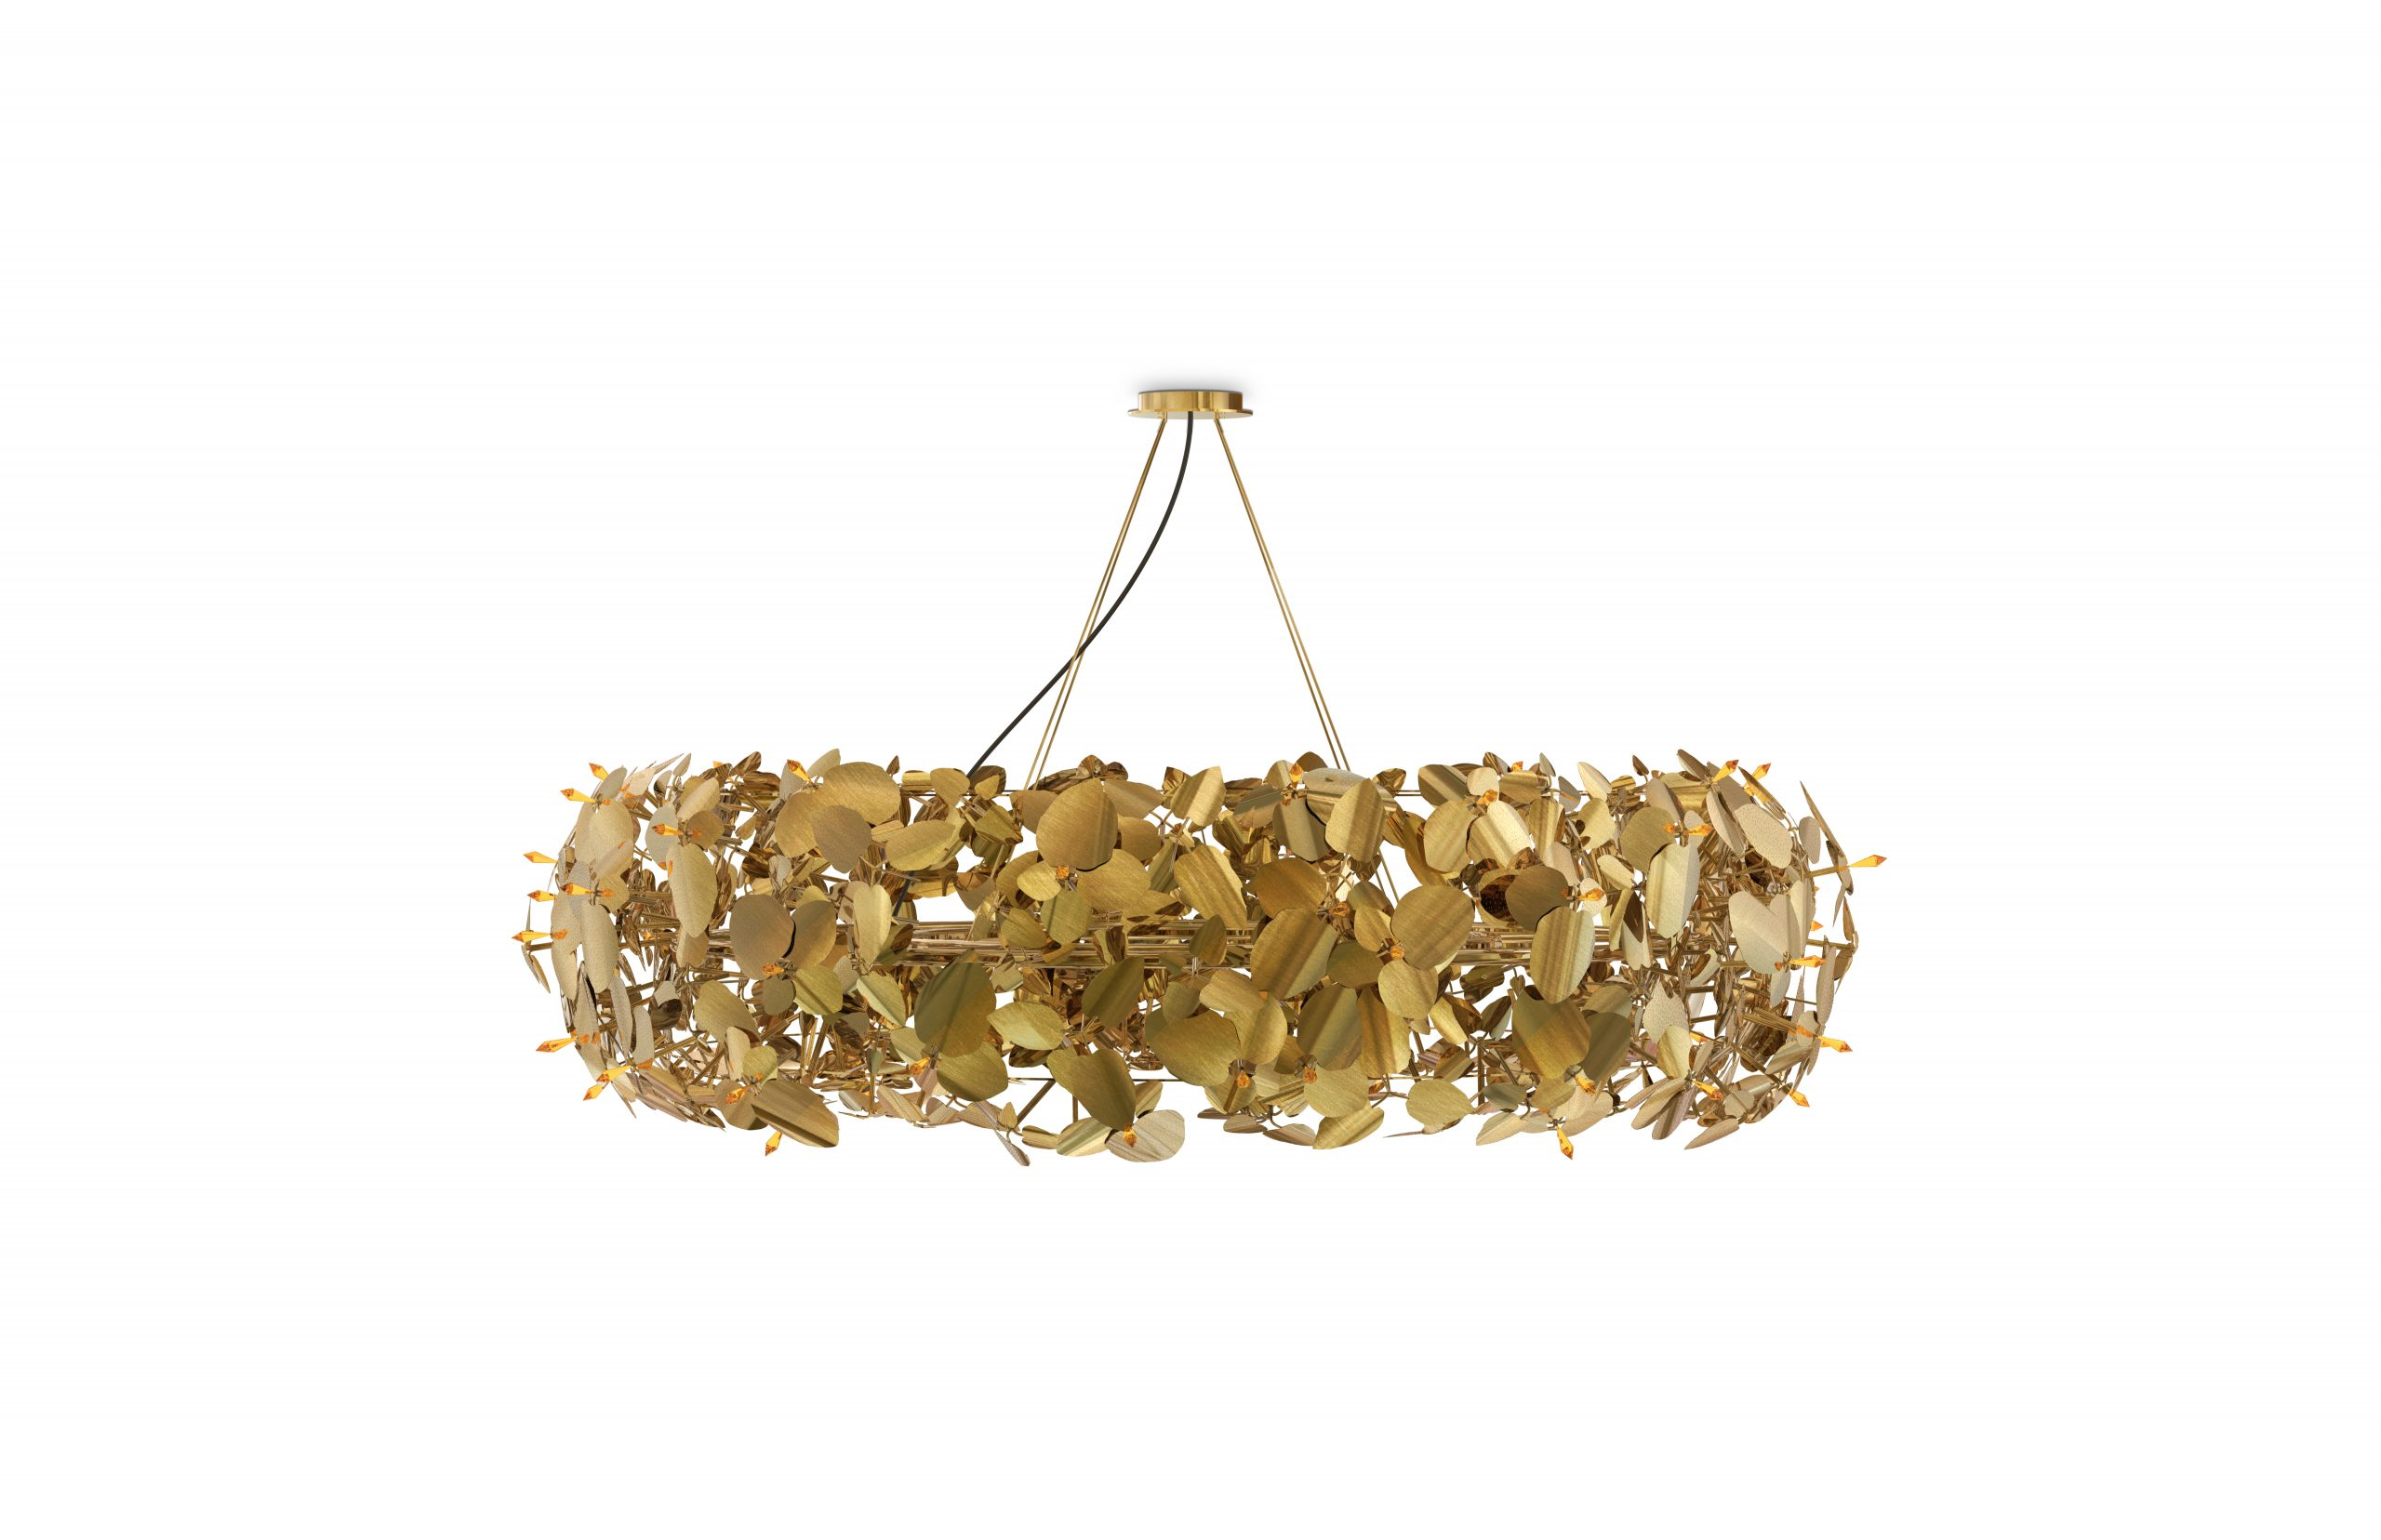 the mcqueen collection The McQueen Collection – Where Lighting And Artwork Come Together mcqueen round suspension 01